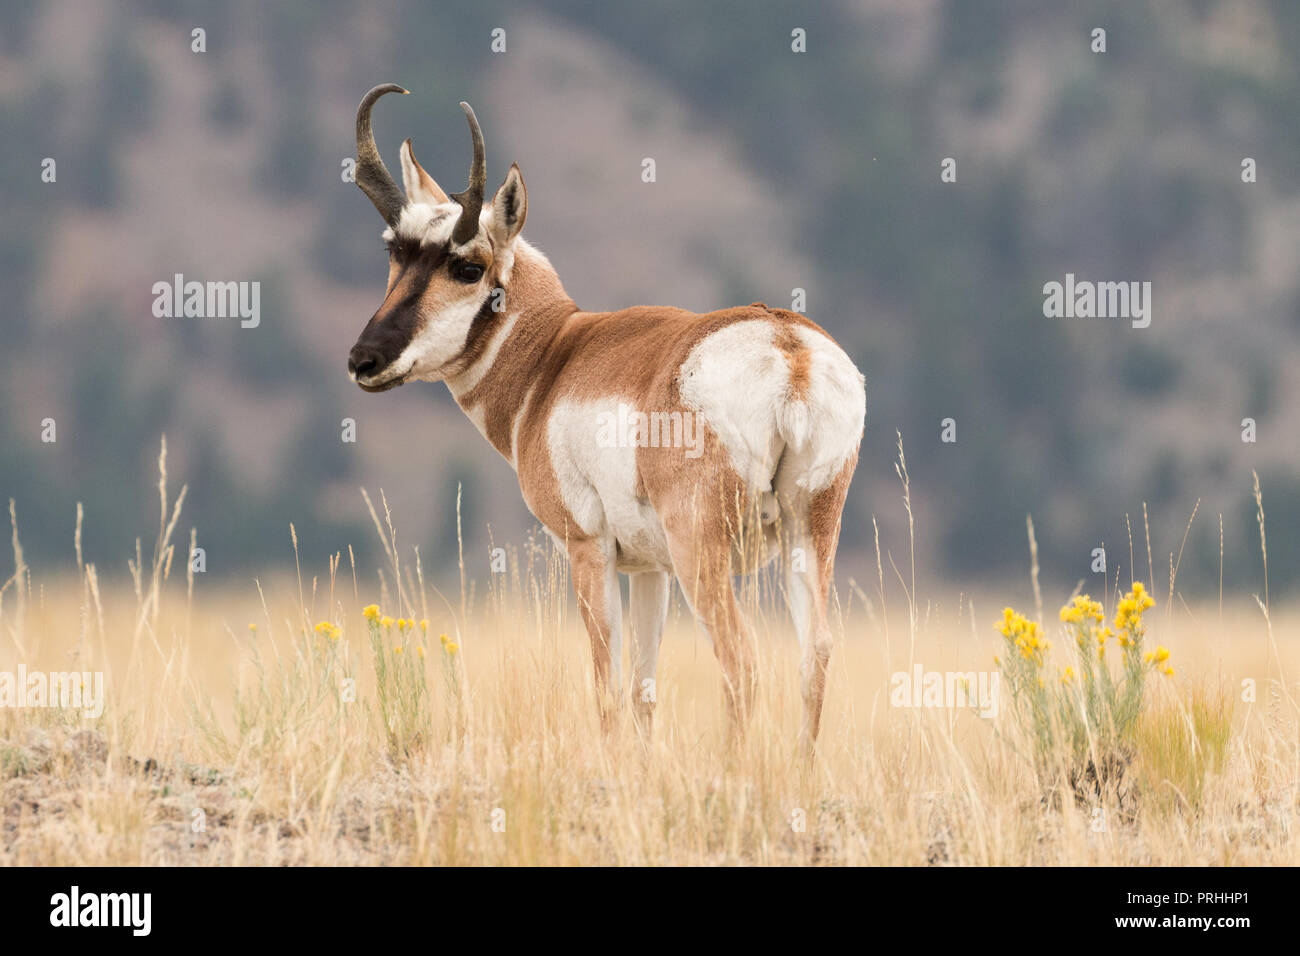 Pronghorn buck in Yellowstone National Park during the mating season. - Stock Image